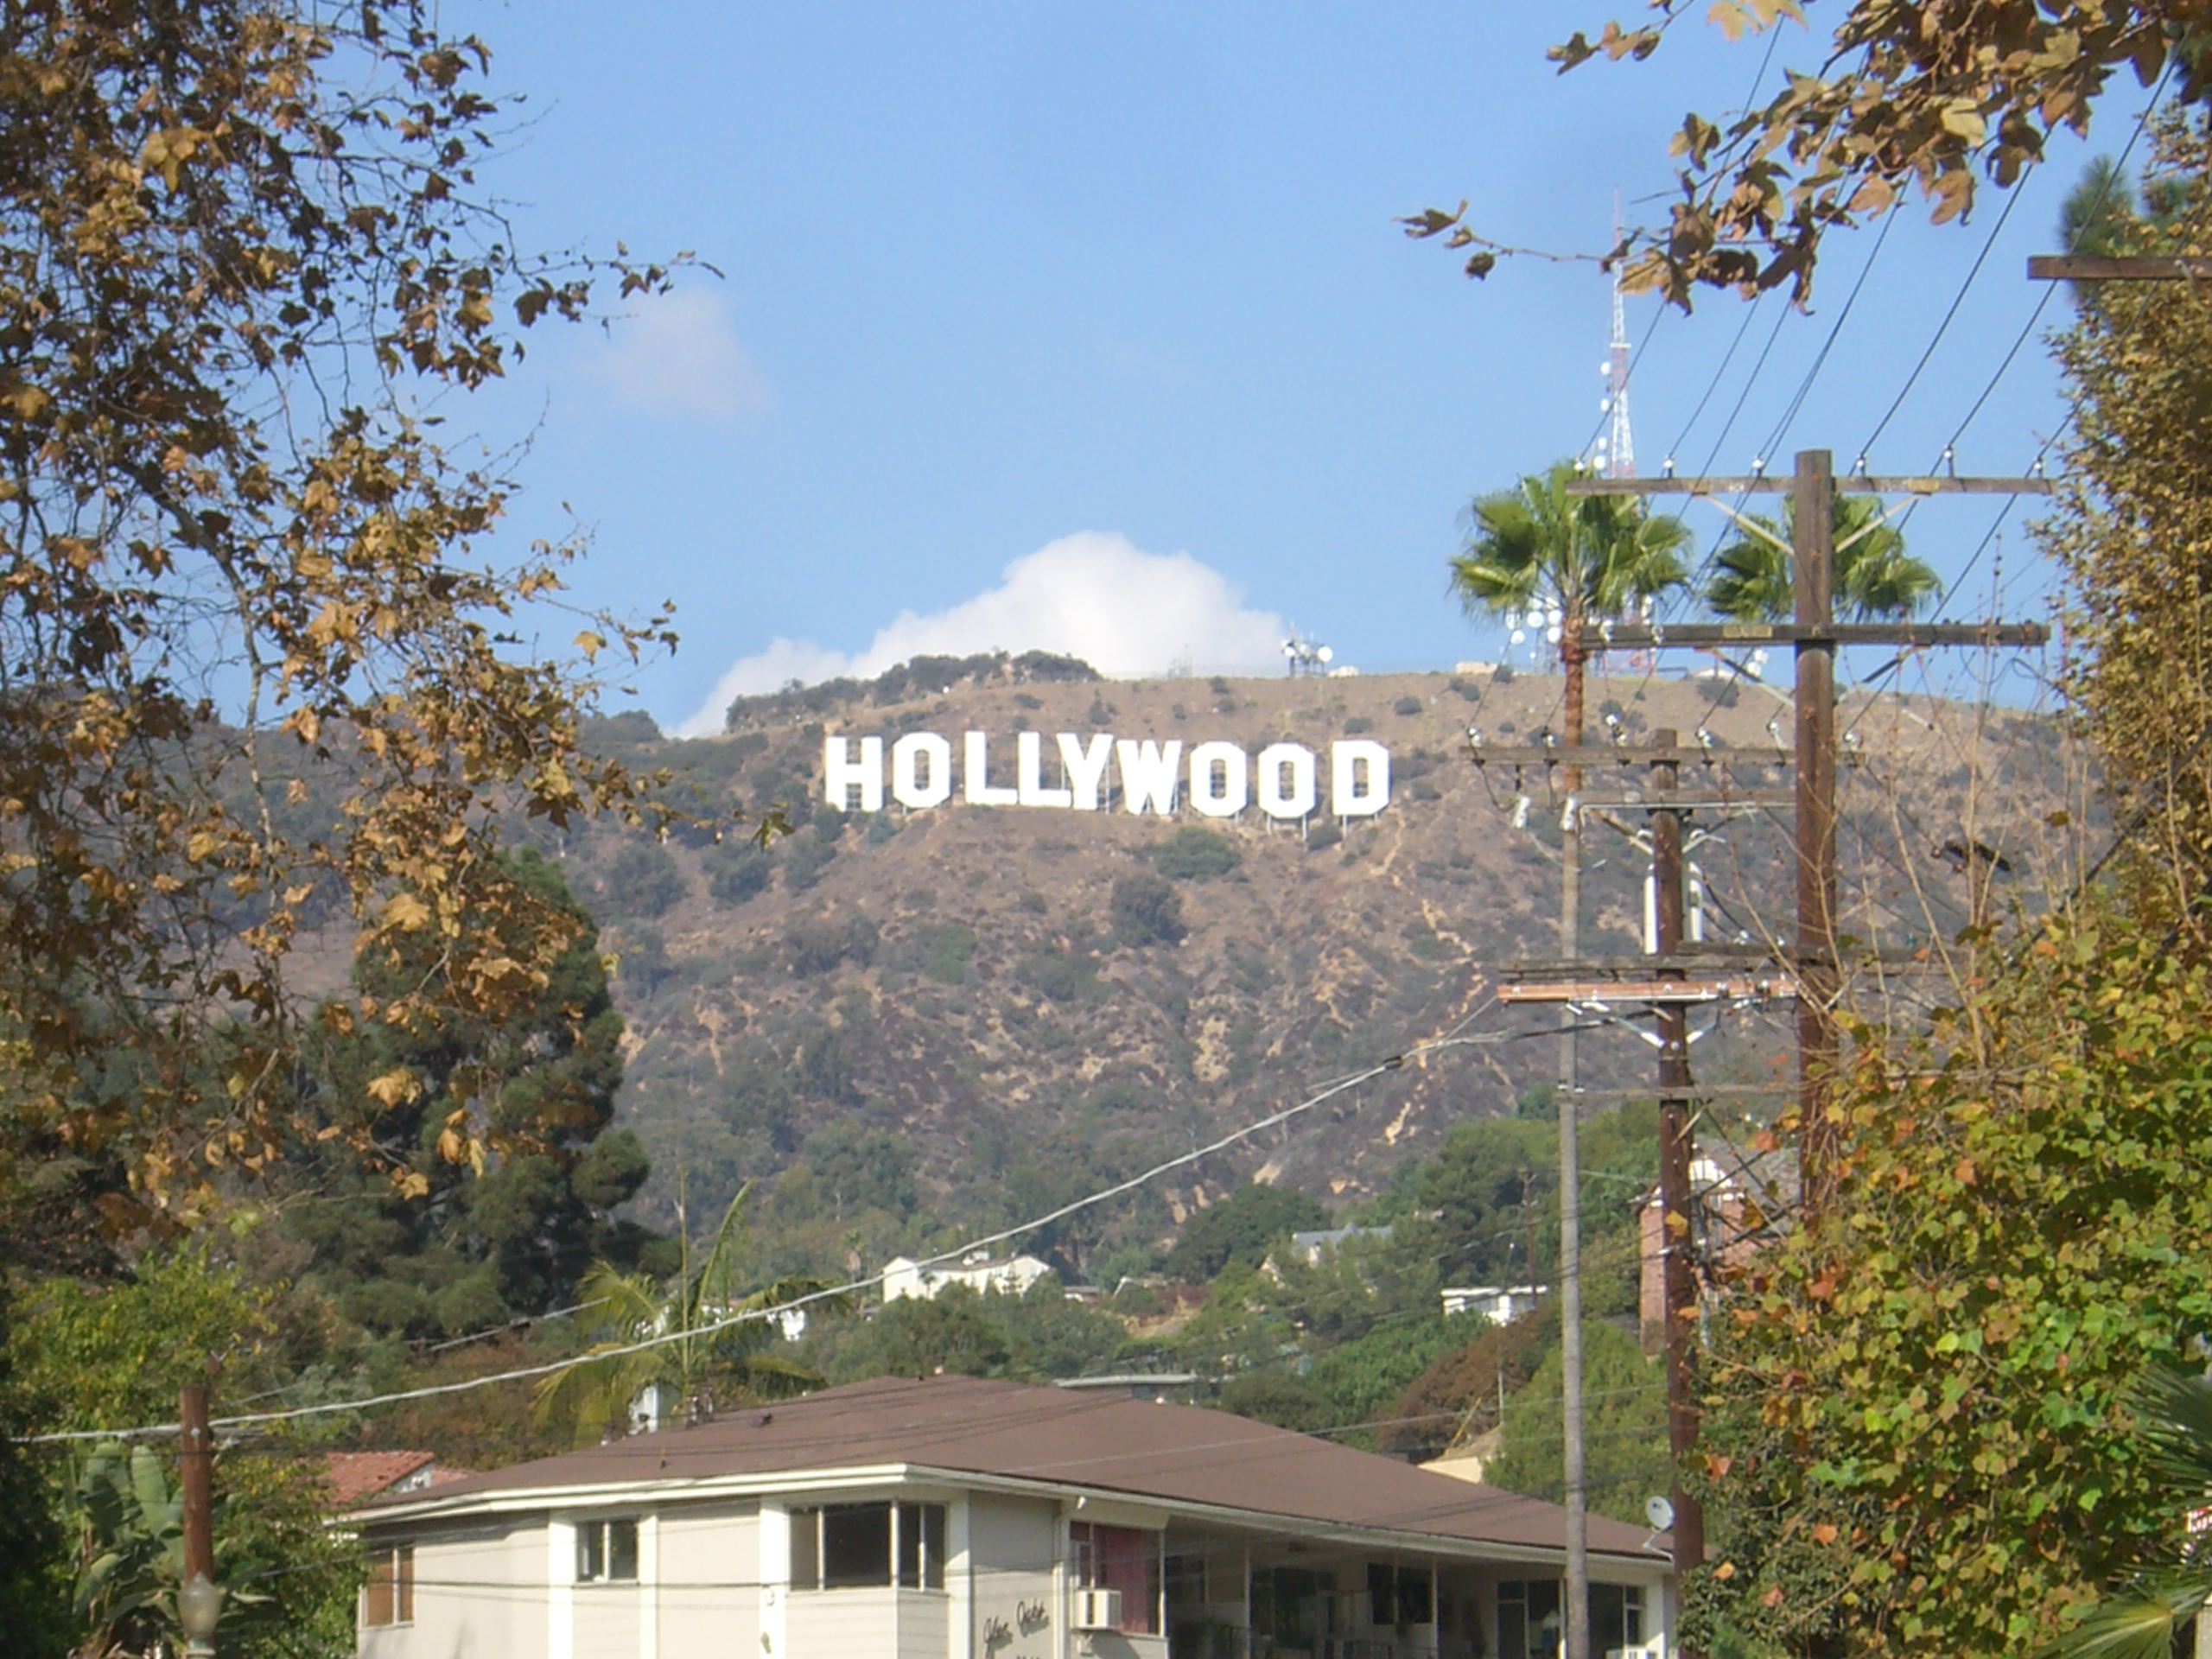 file hollywood los angeles california4378 jpg wikimedia commons